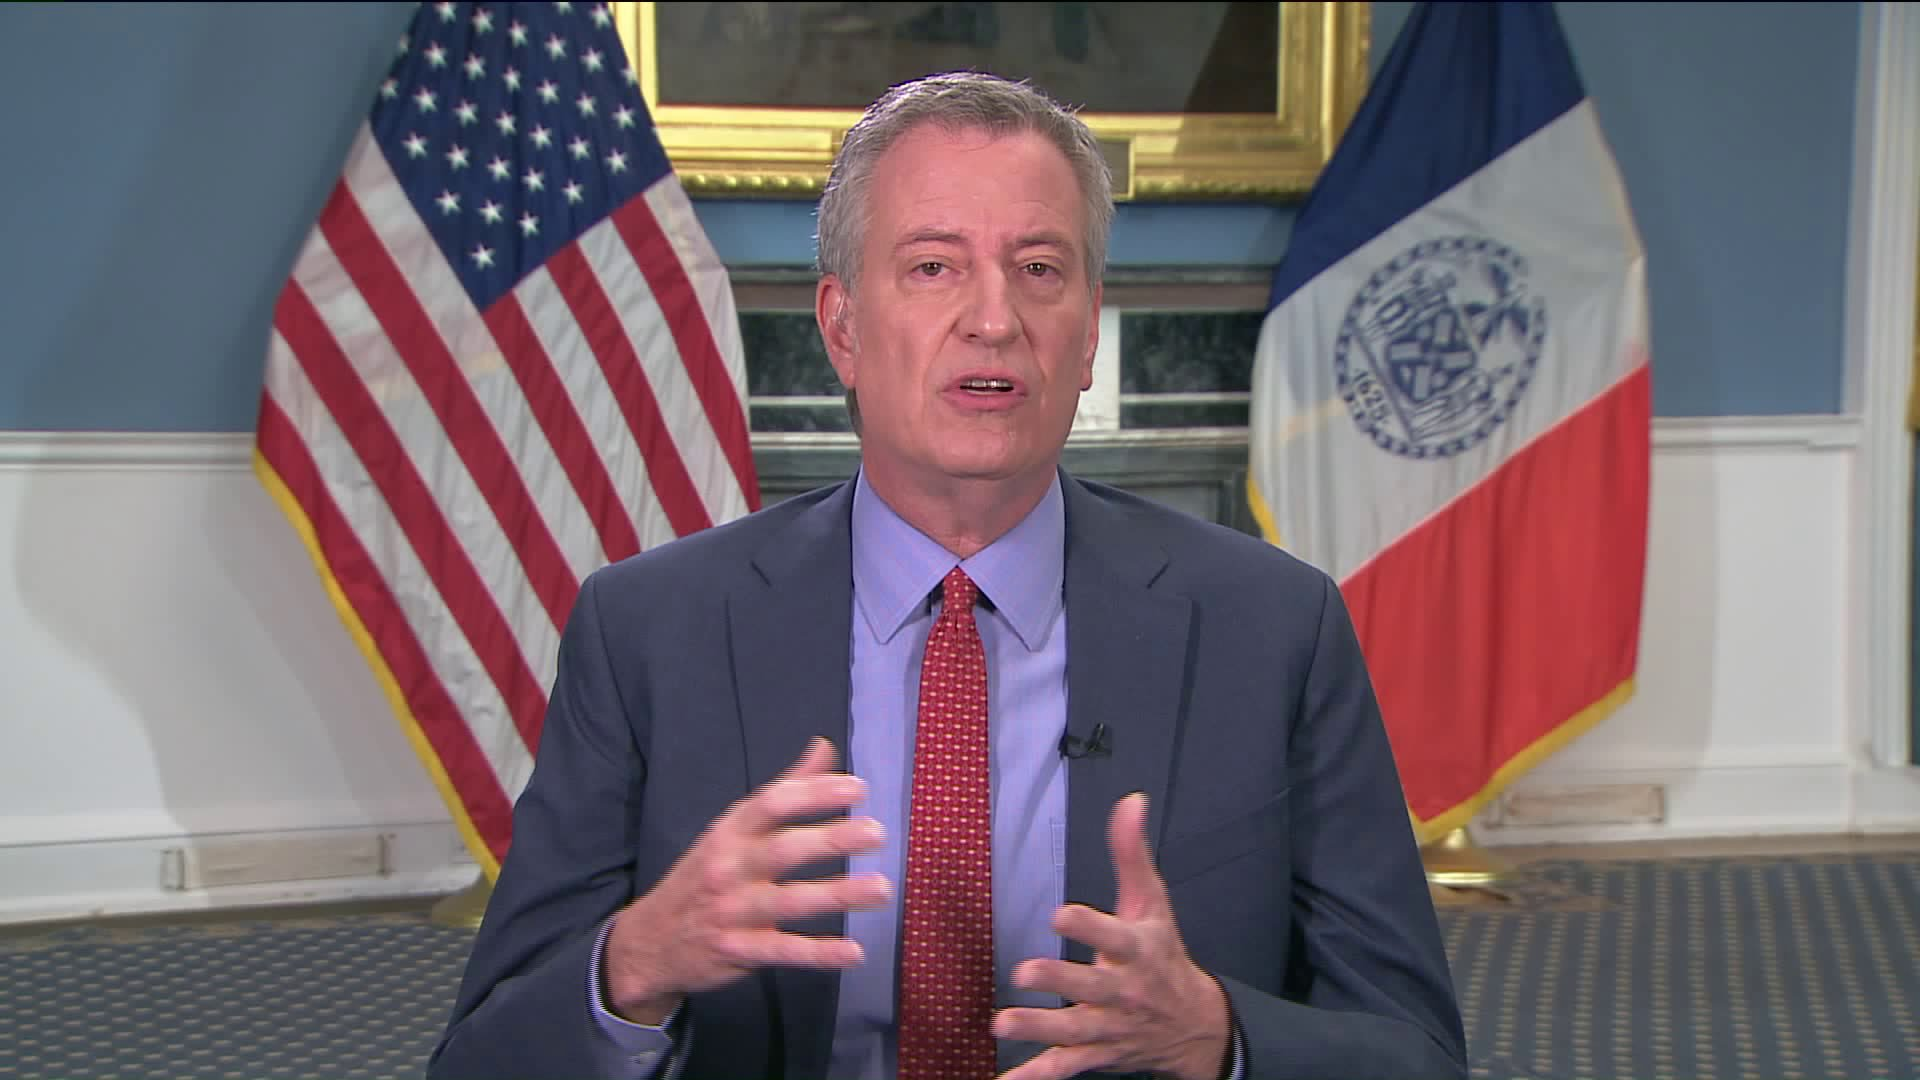 De Blasio Predicts NYC Public Schools Won't Reopen This School Year